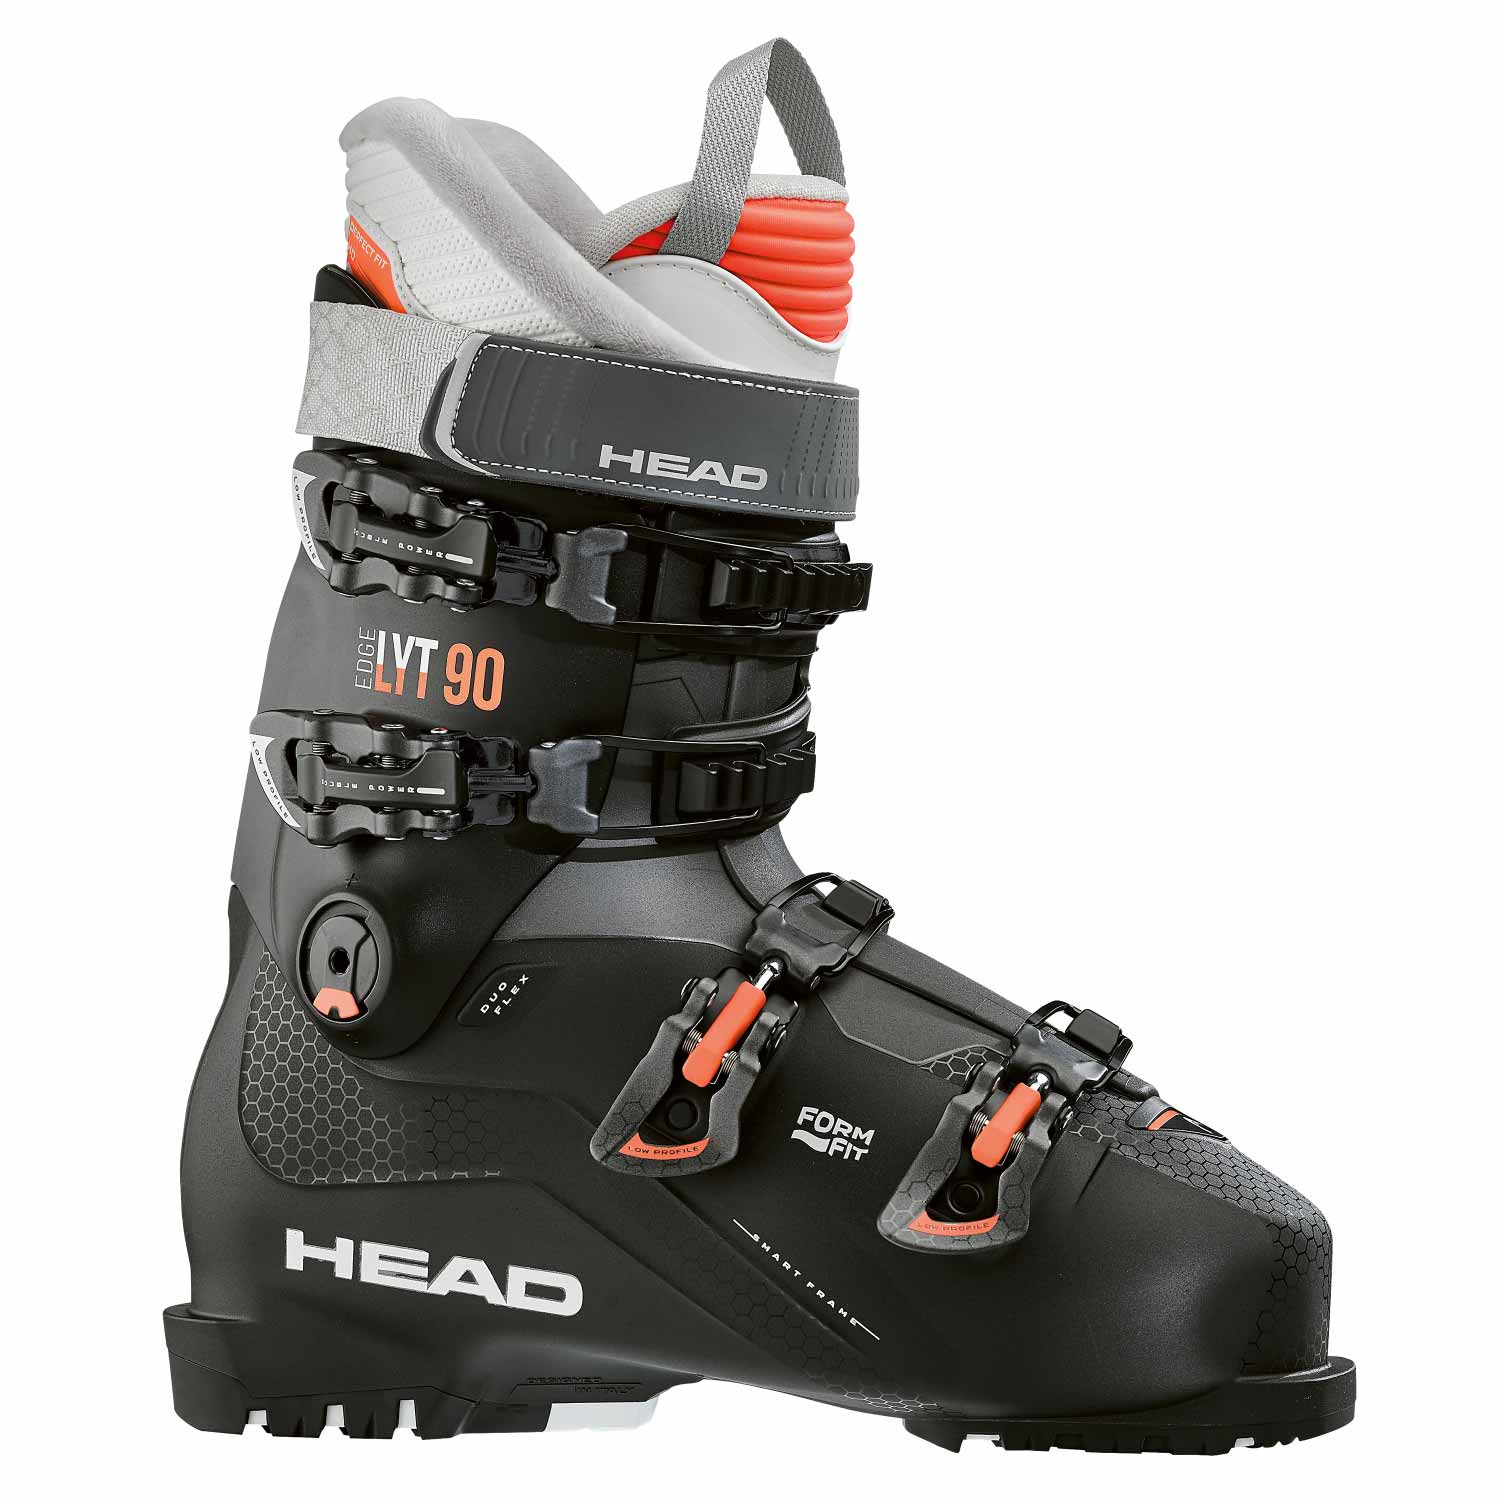 Head Edge LYT 90 W Ski Boot Black/Salmon 2020